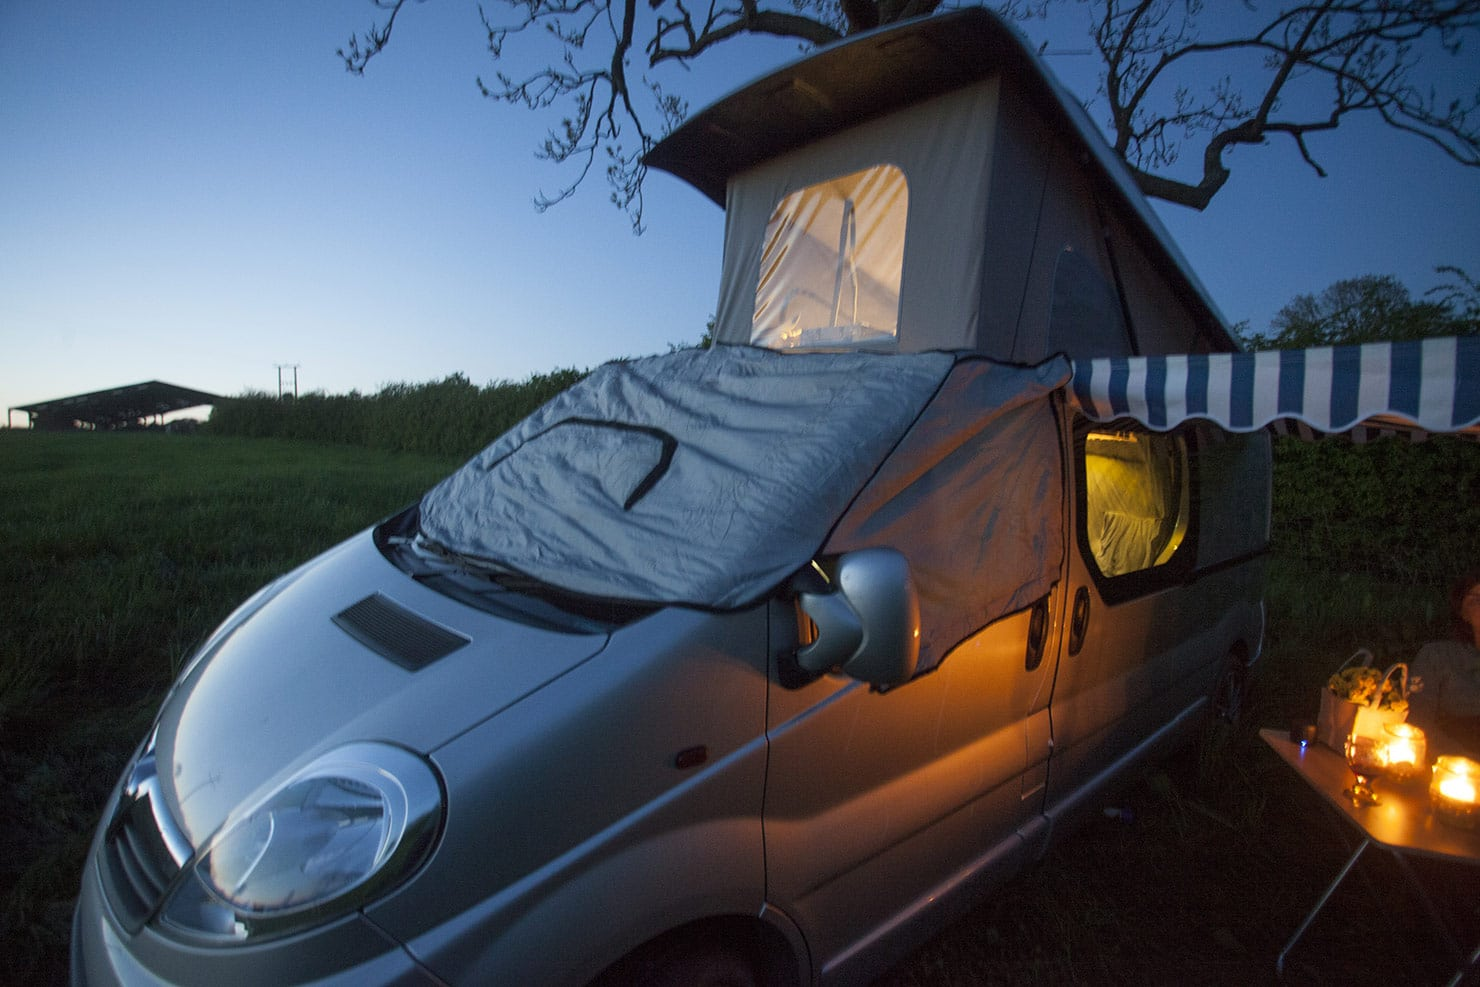 The padded front screen stops condensation, cold and light. Allowing for a peaceful sleep in Sylvester the camper van.